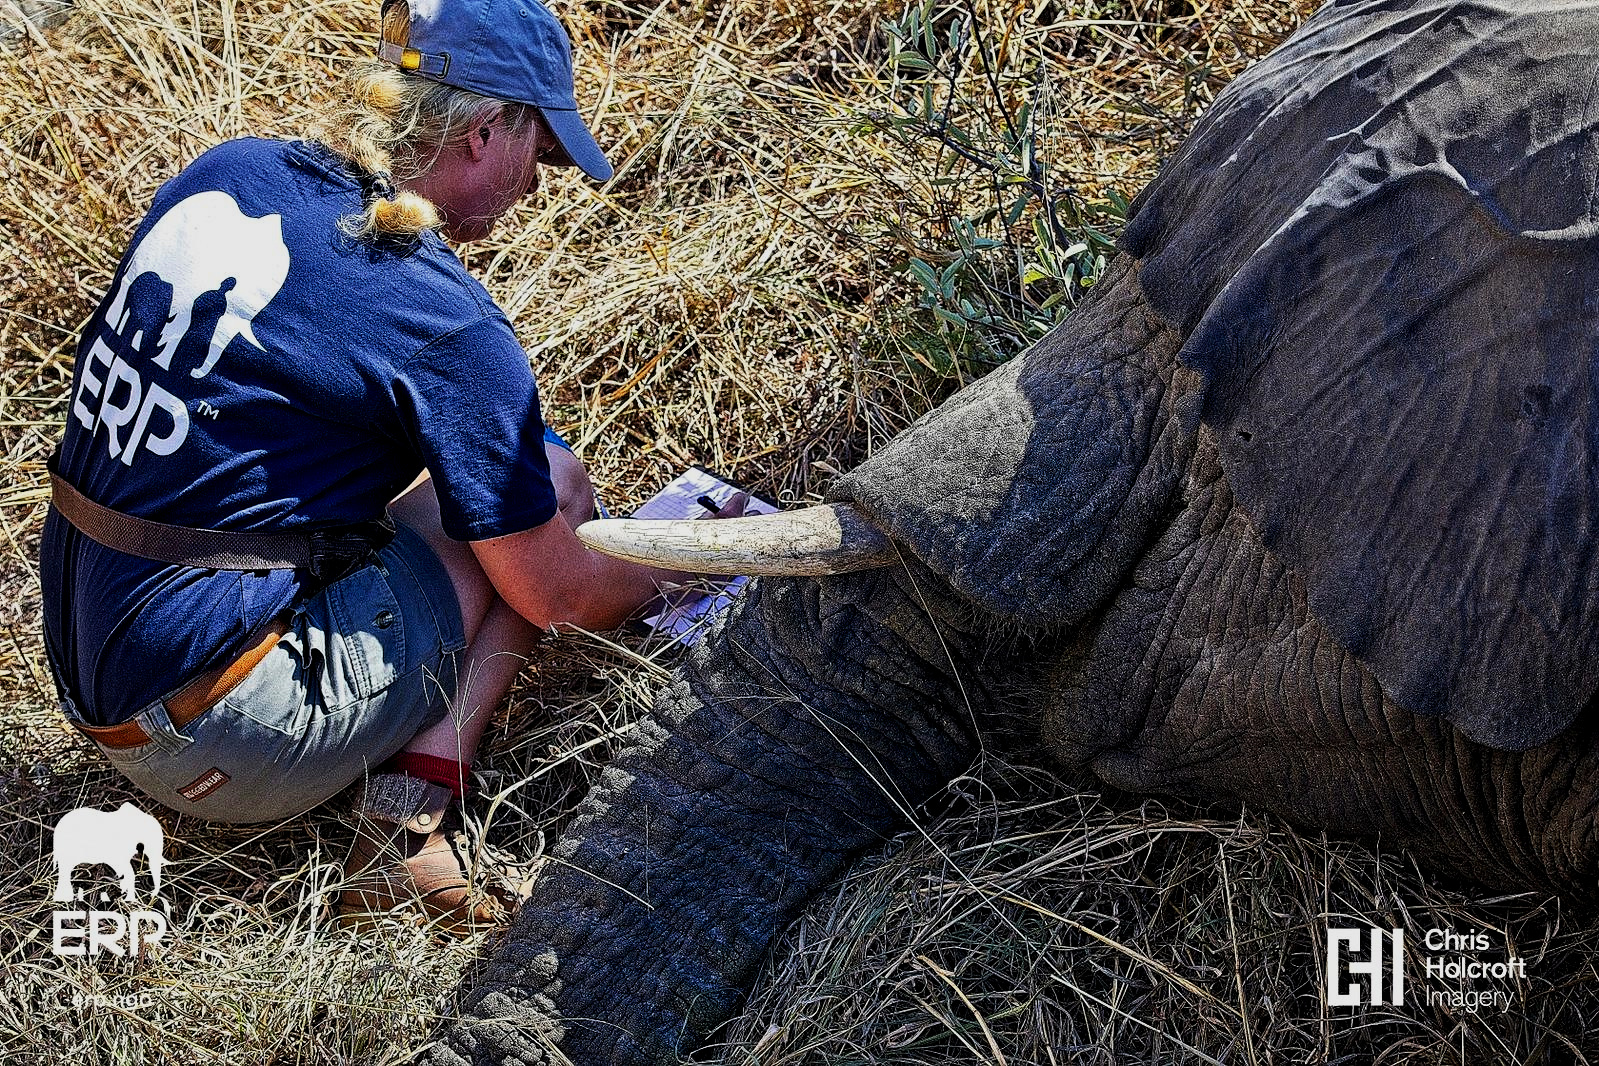 Ida taking measurements of a sedated elephant. Photo: Chris Holcroft